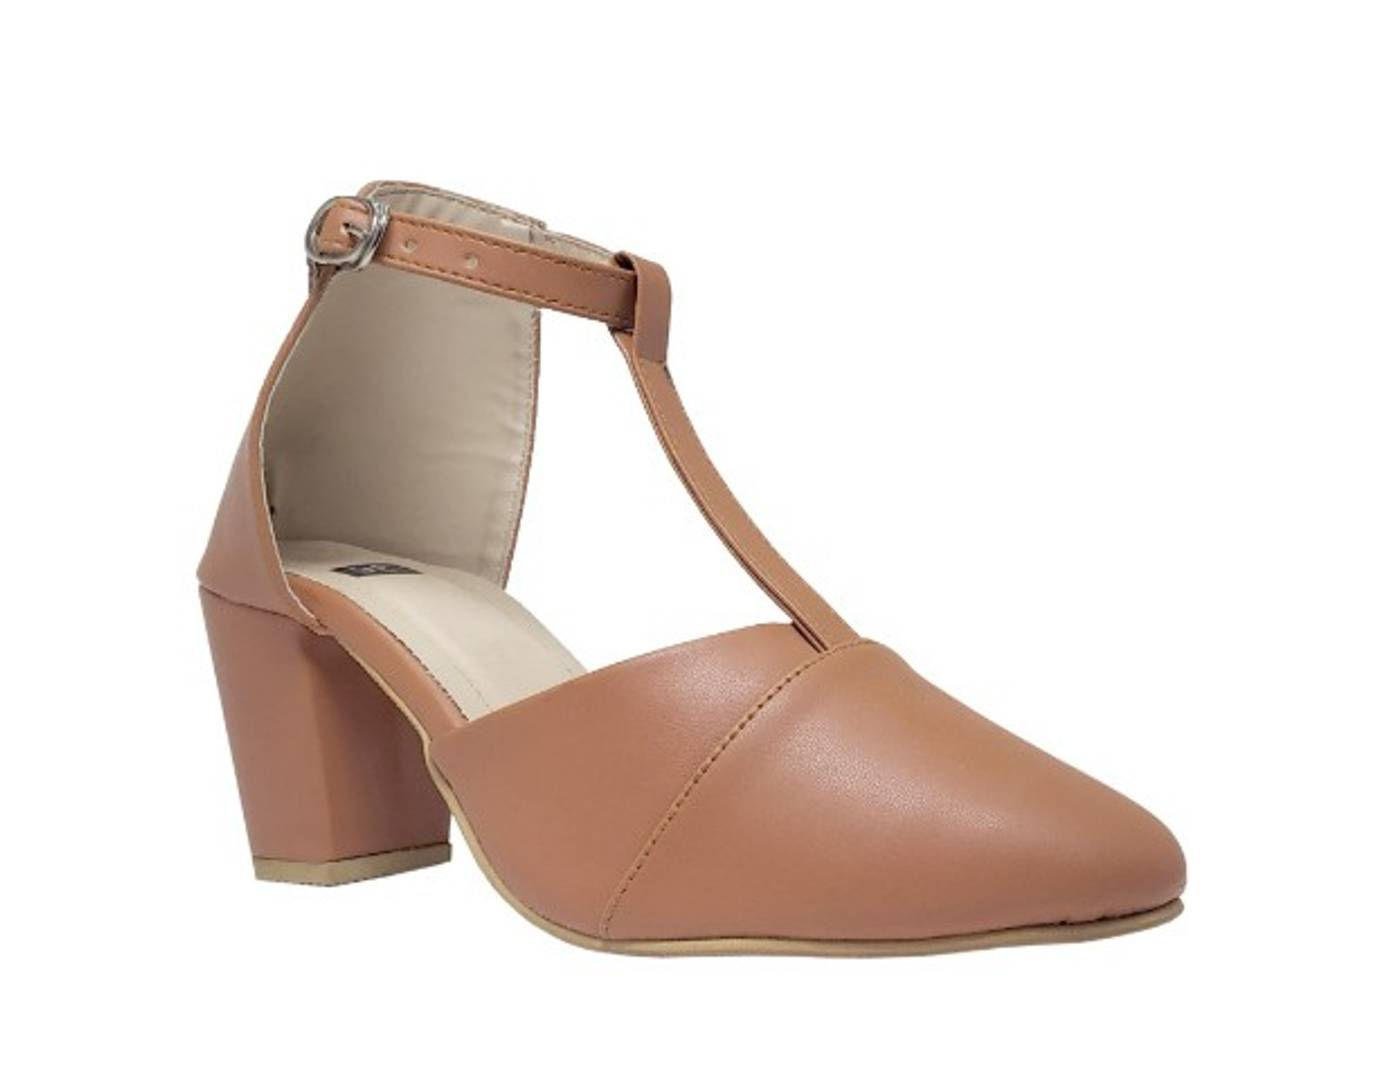 Stylish Synthetic Leather Tan Heeled Sandal For Women